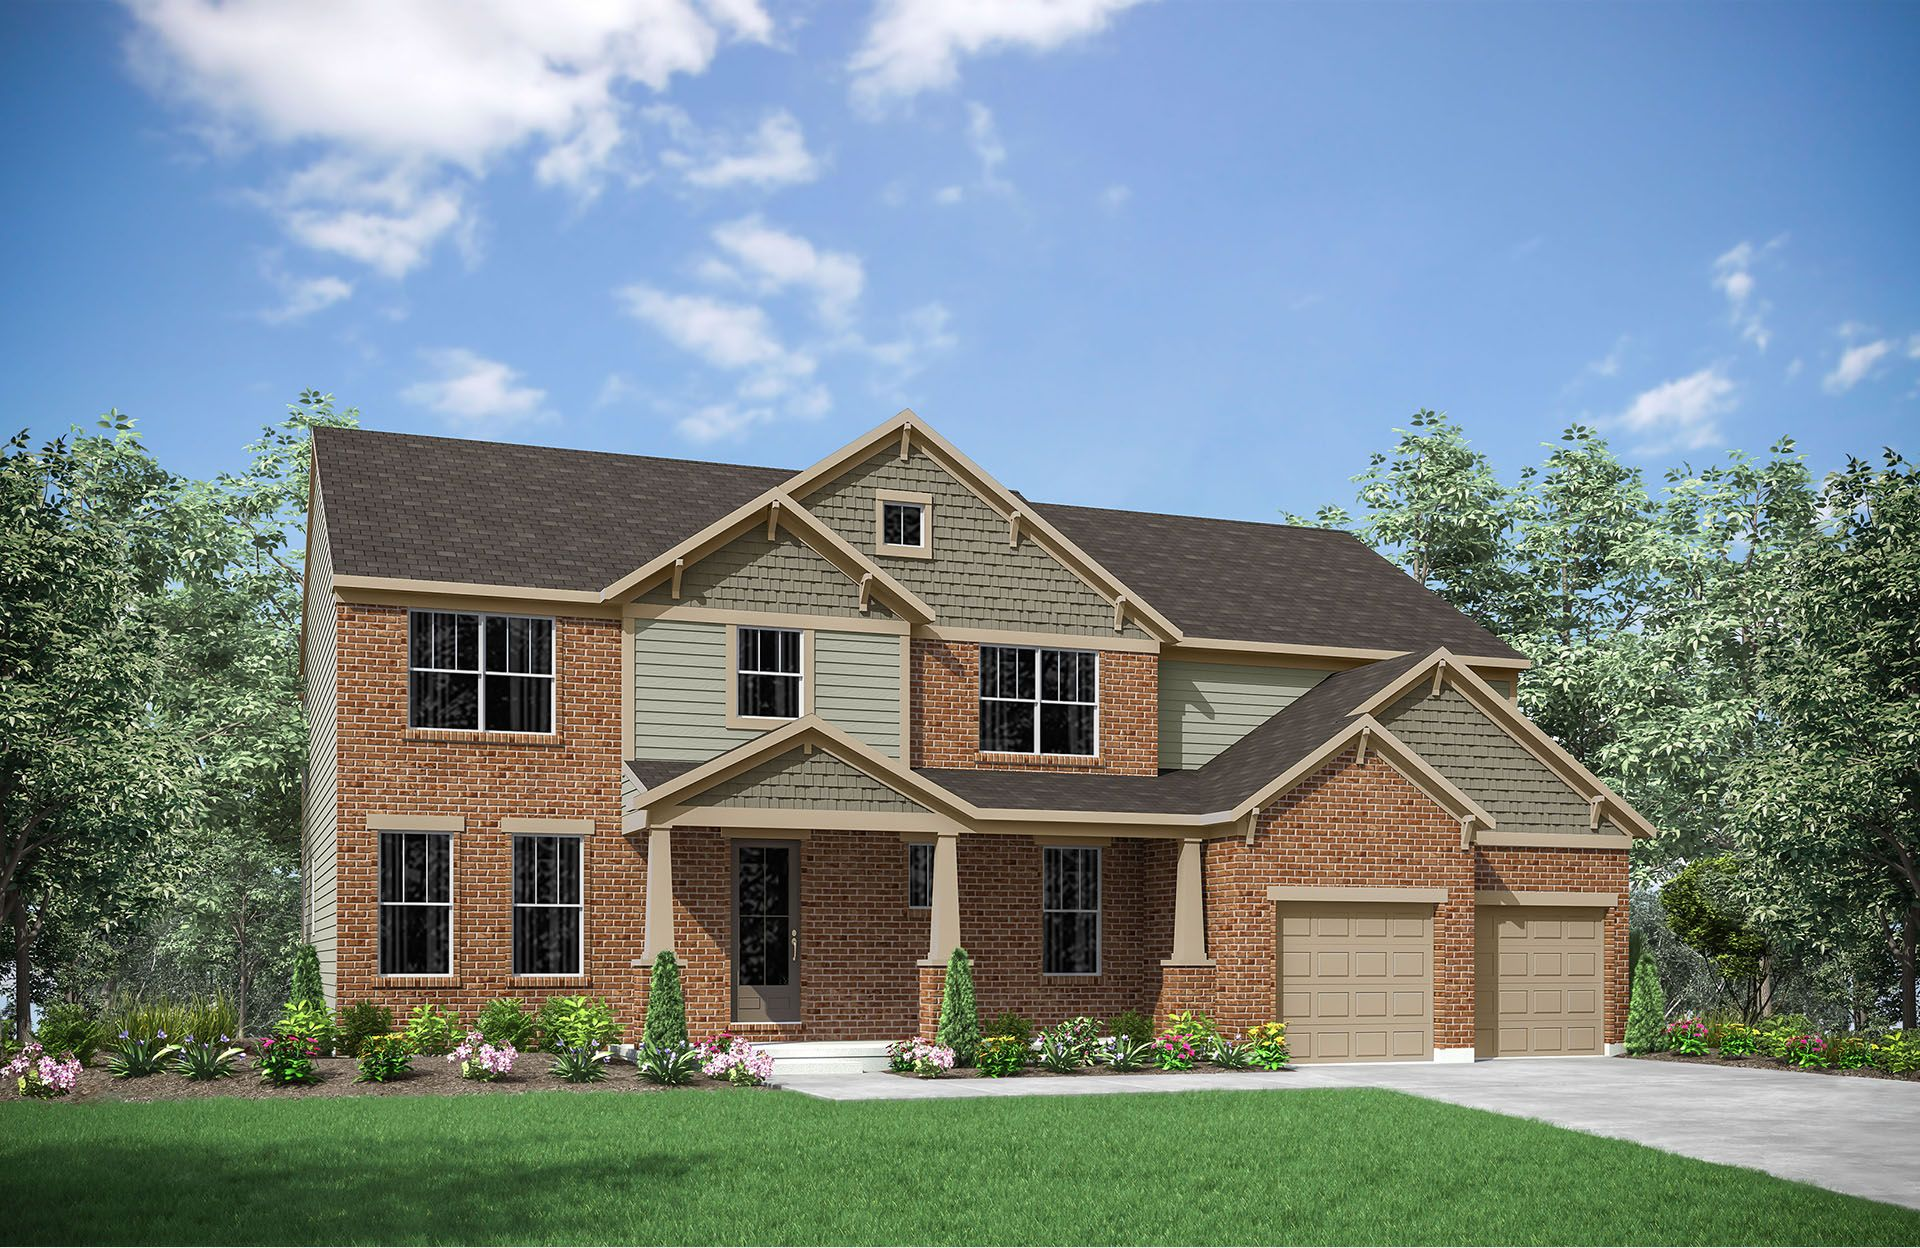 Single Family for Sale at Thornwilde Estates - Rossford 1629 Southcross Drive Hebron, Kentucky 41048 United States